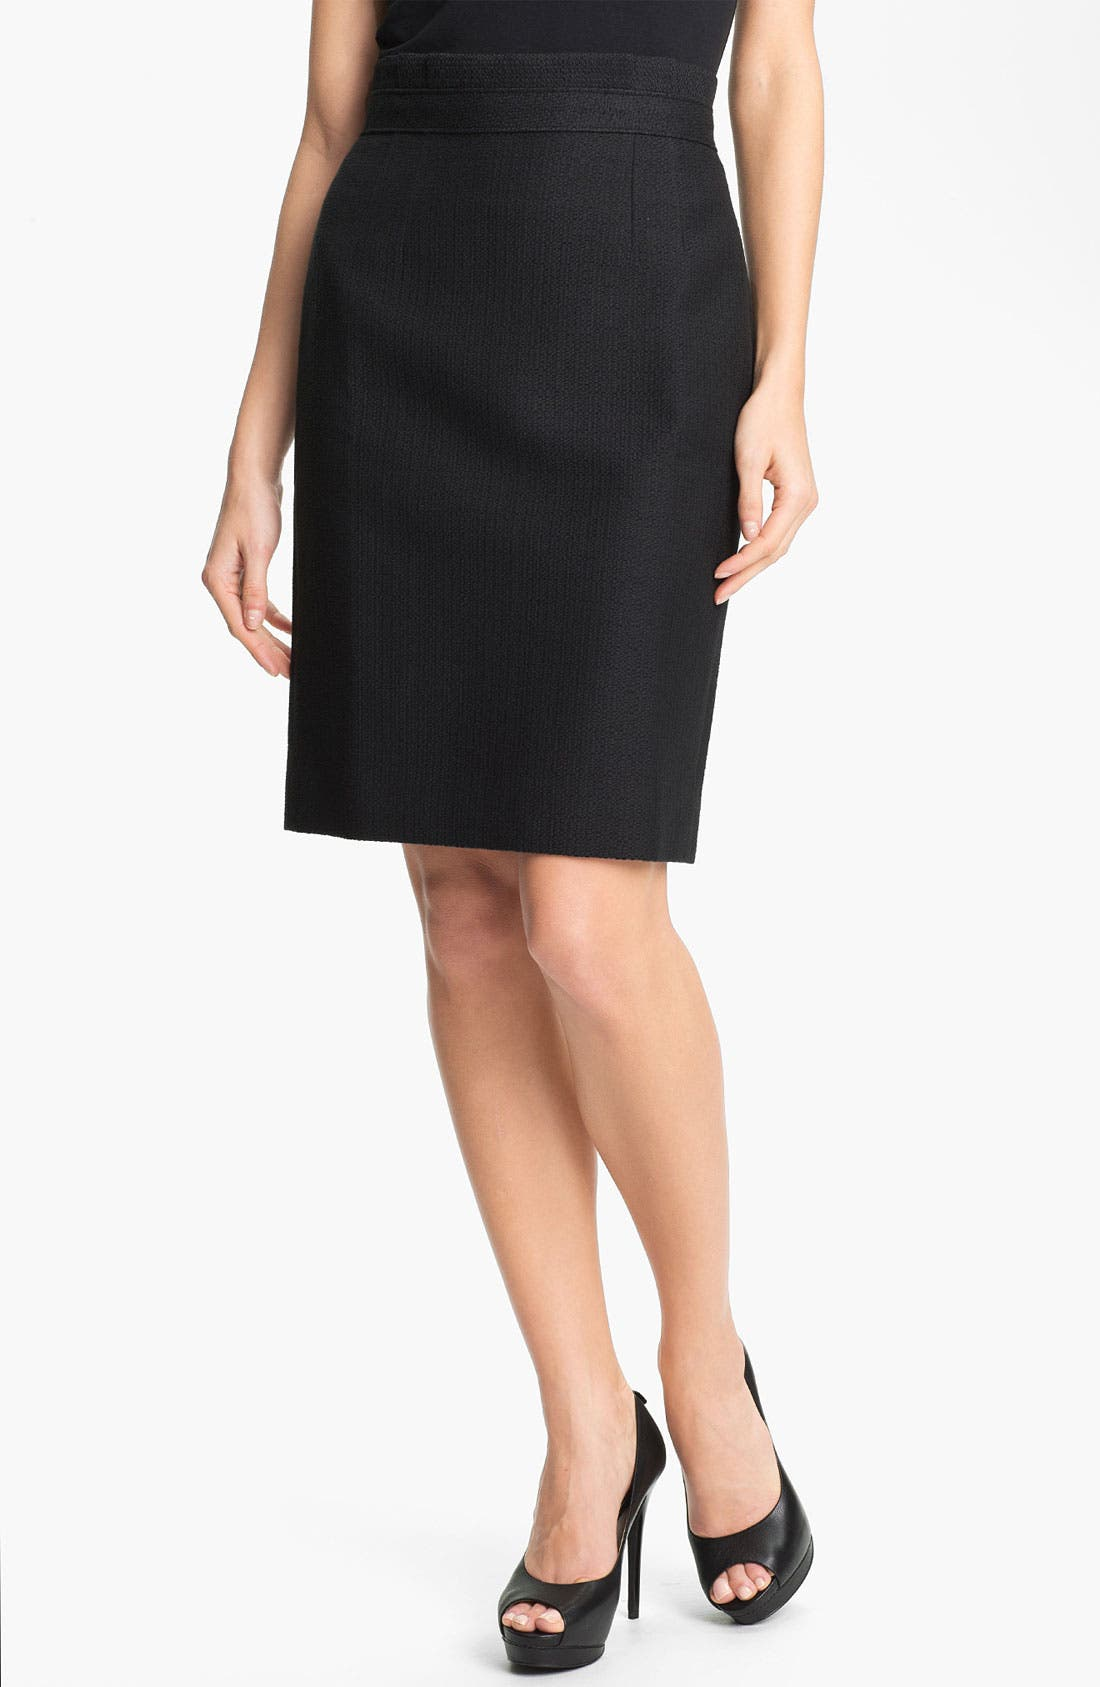 Alternate Image 1 Selected - Classiques Entier 'Bella' Textured Skirt